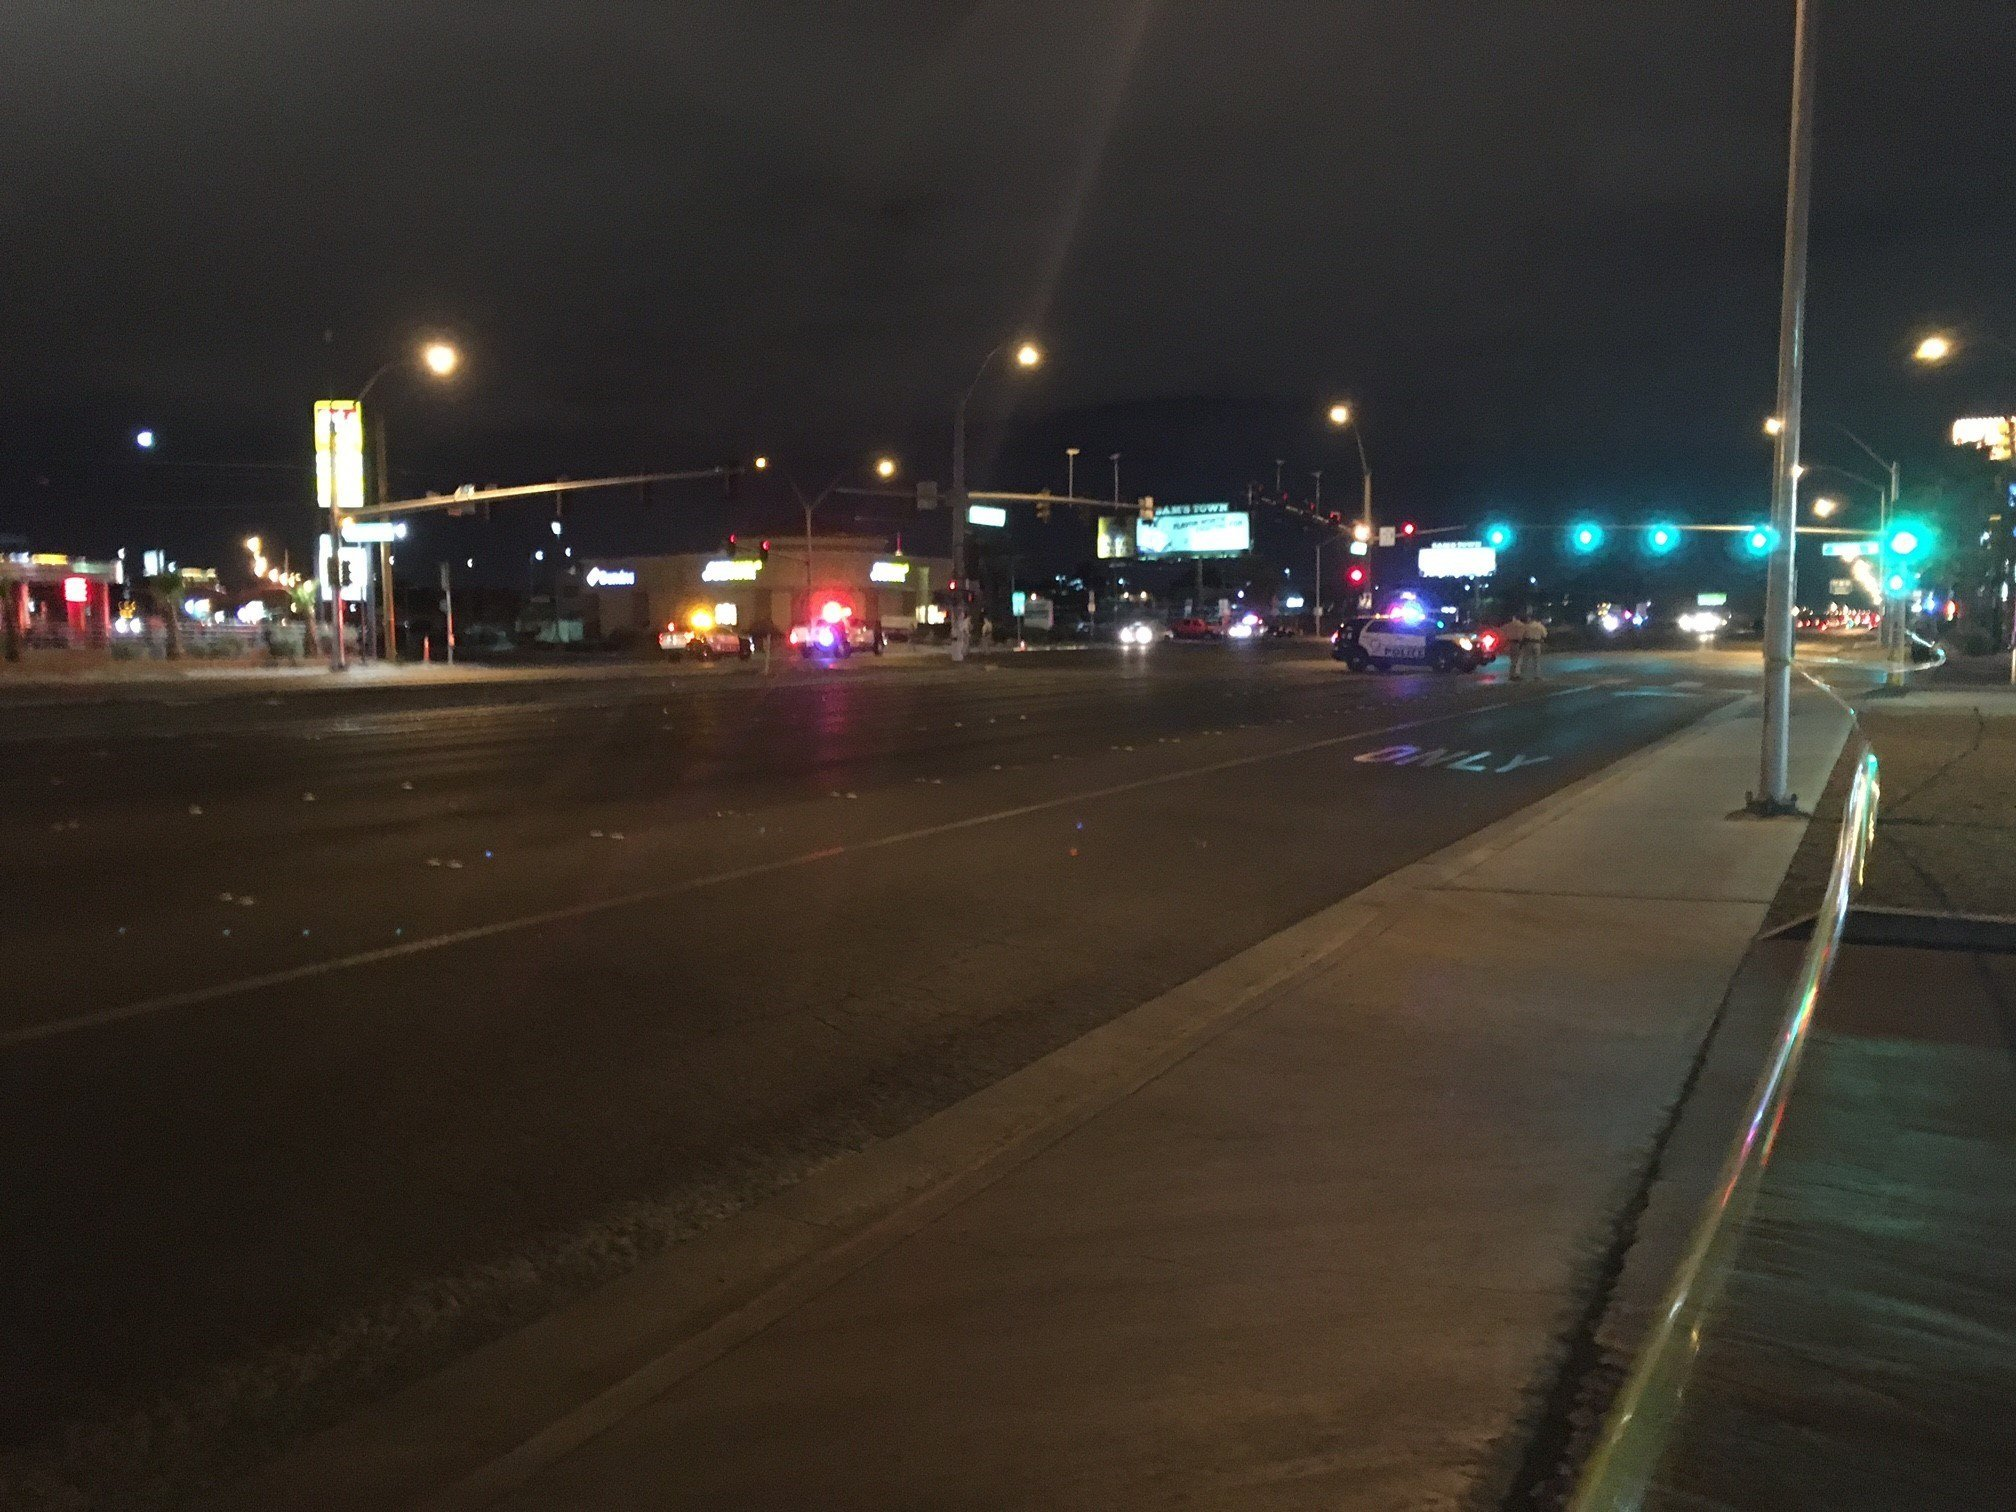 Police shutdown the intersection of Boulder Highway and Desert Inn after a critical crash involving a pedestrian on March 31, 2017 (FOX5).